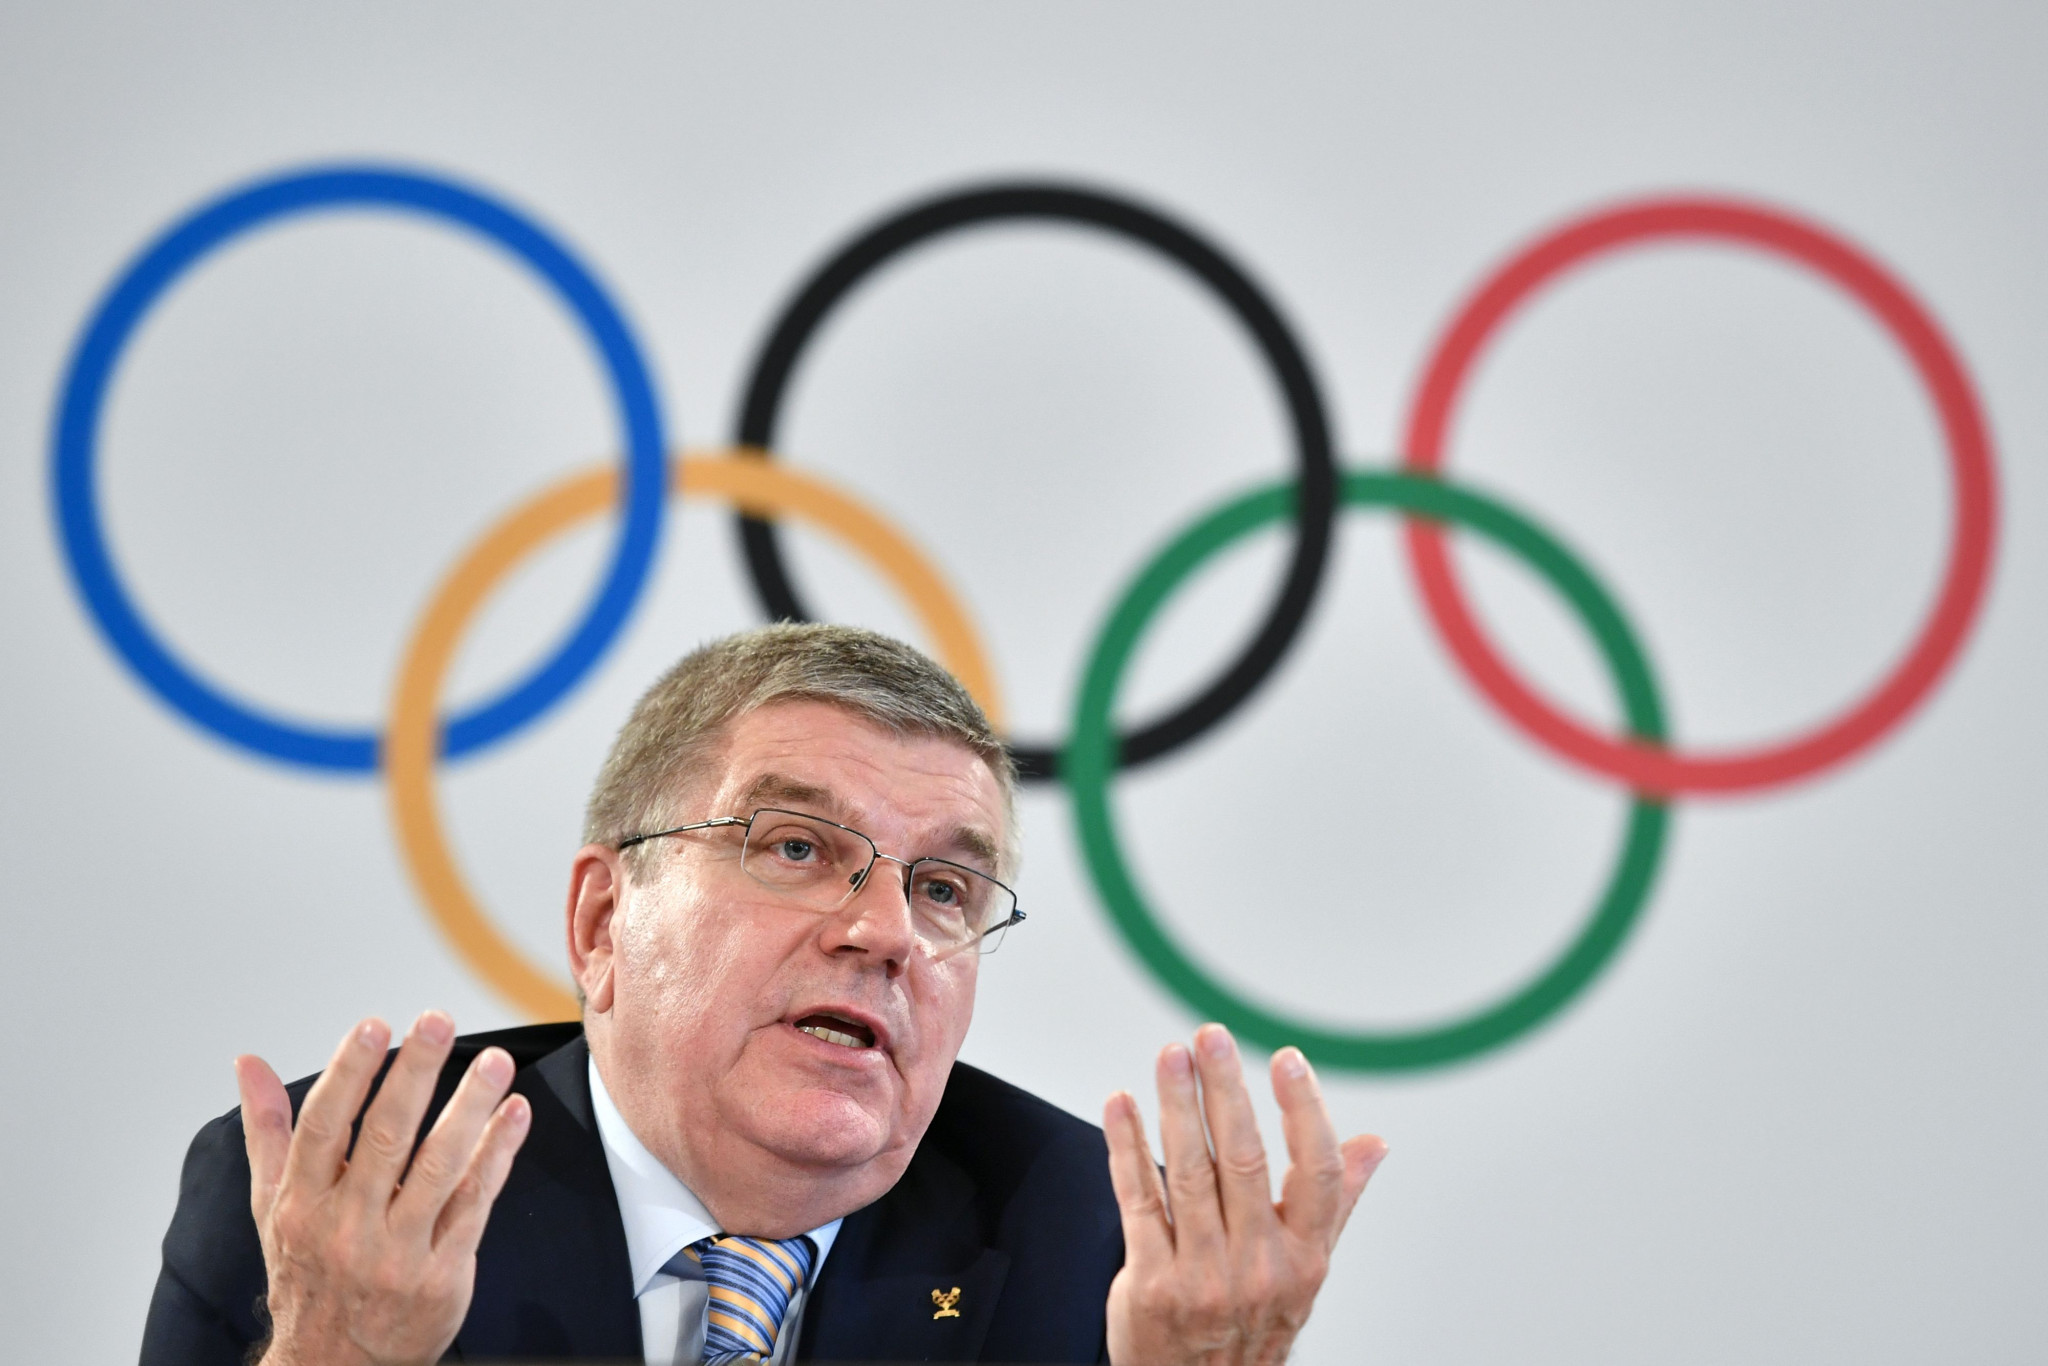 IOC President Thomas Bach has previously warned Gafur Rakhimov's election could lead to boxing losing its Olympic place ©Getty Images